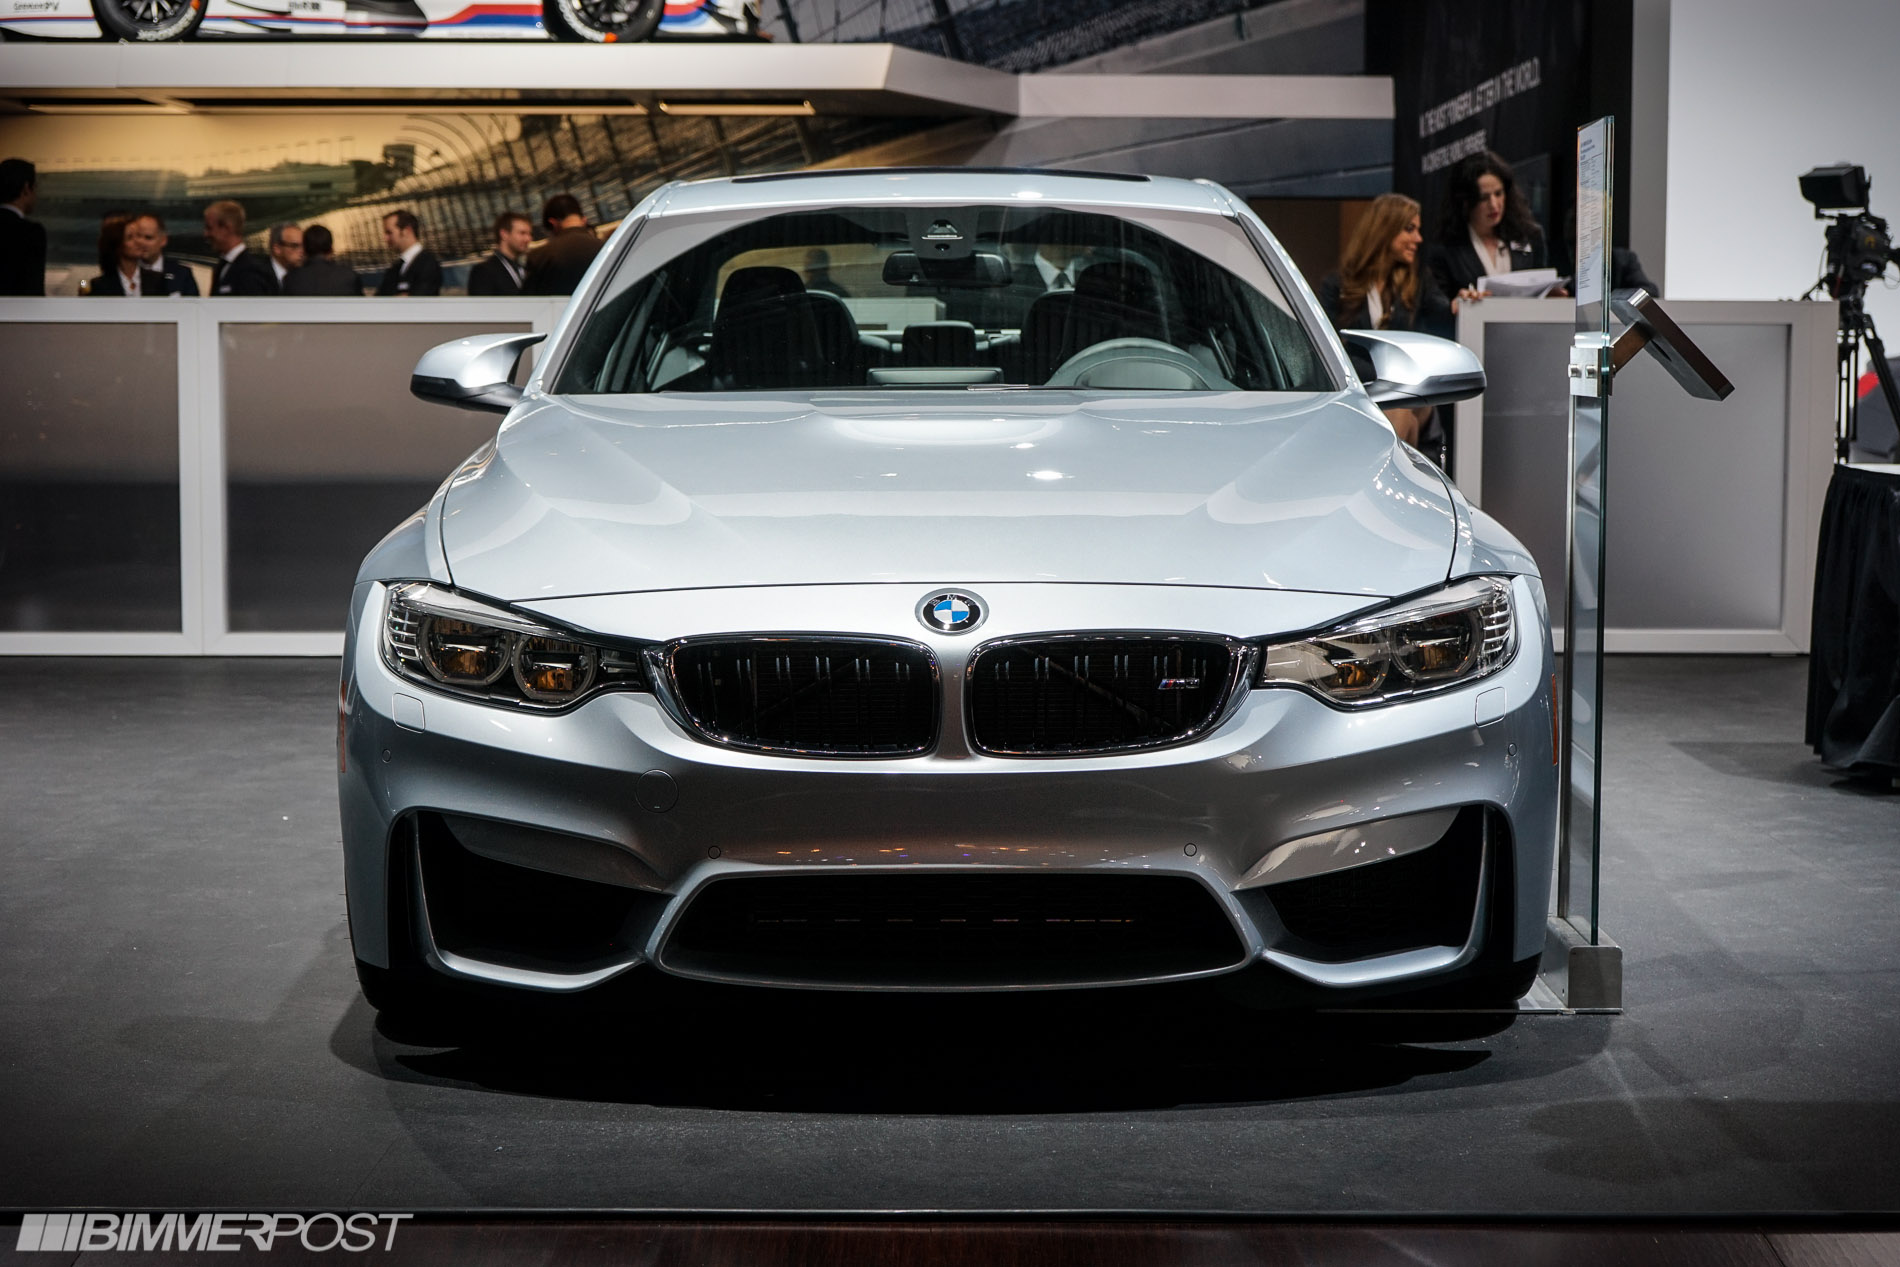 2014 NYIAS: BMW M3 (F80) in Silverstone II - Page 4